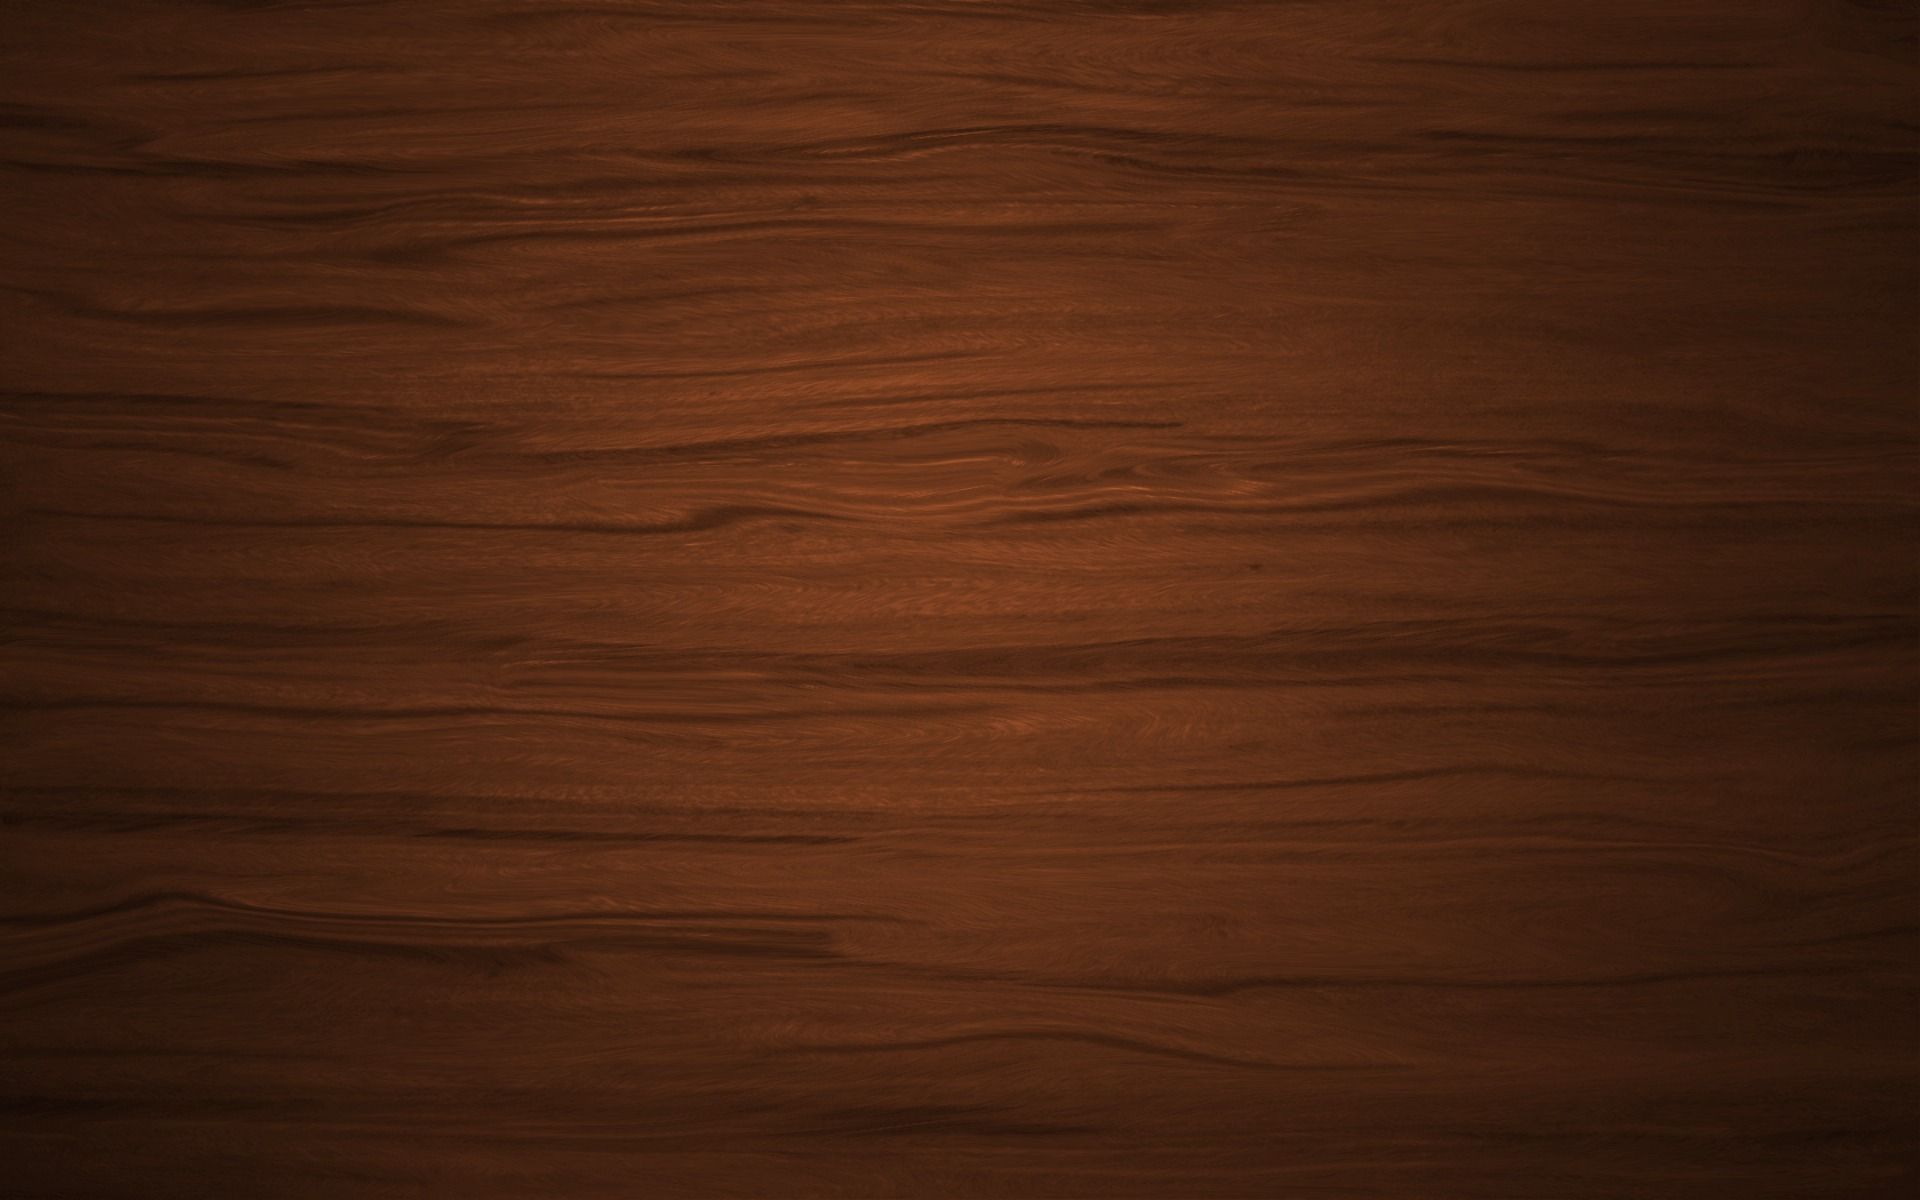 high resolution wood texture - Cerca con Google | WOOD TEXTURE ...